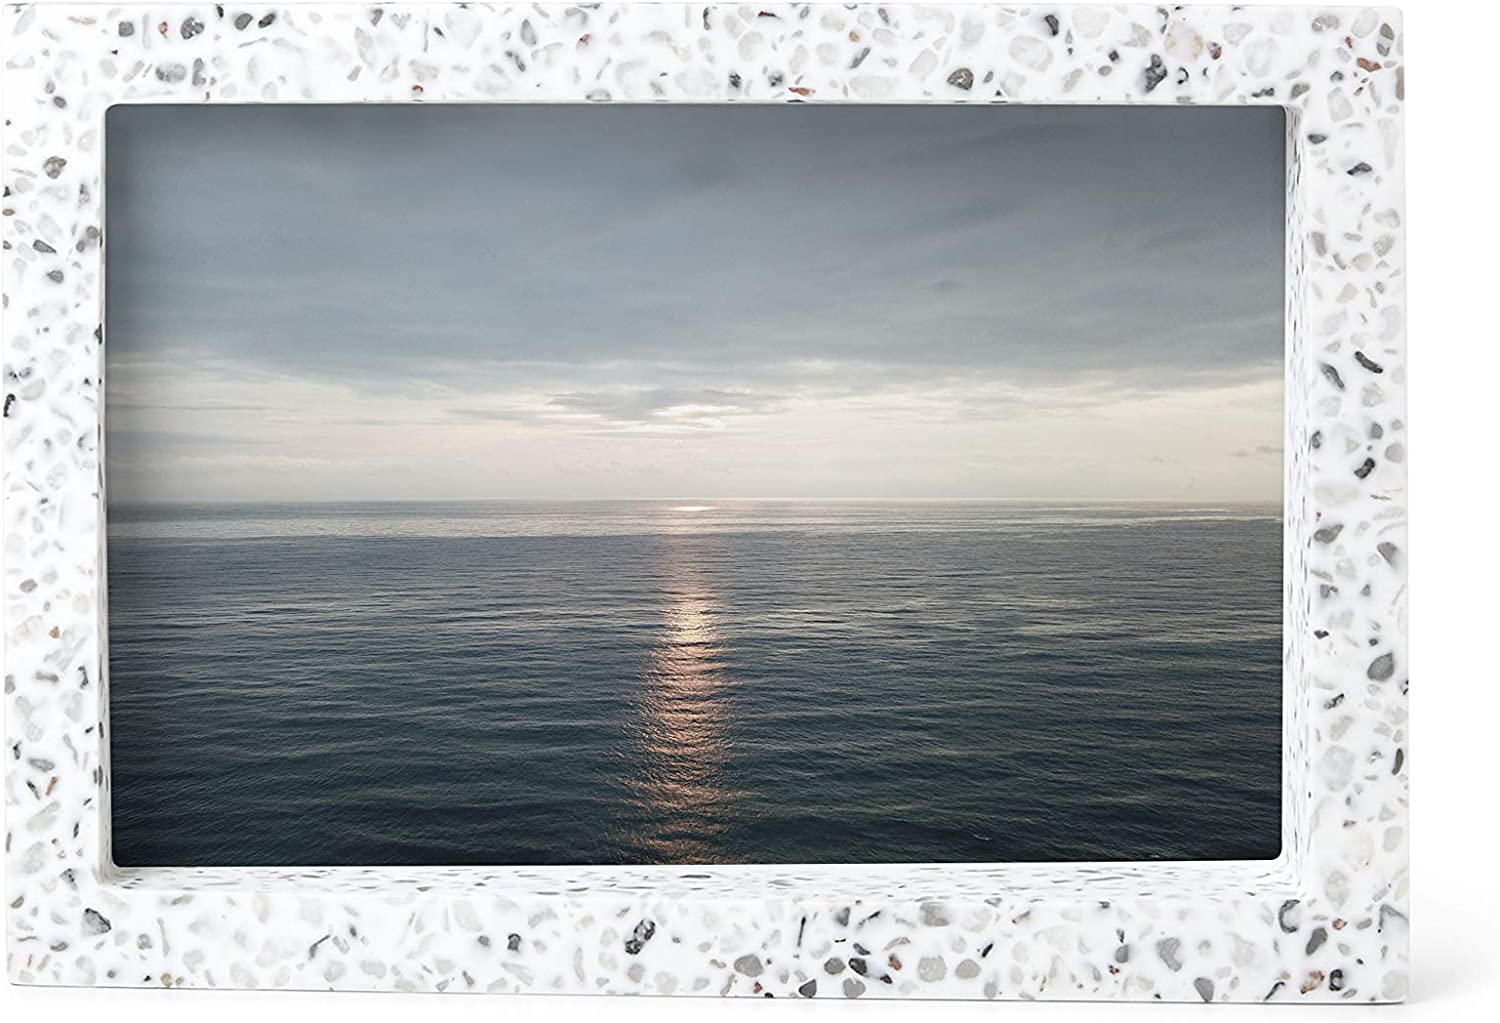 Umbra Edge Resin Picture Frame and Photo Display for Desk or Table Top, 4x6, Terrazzo